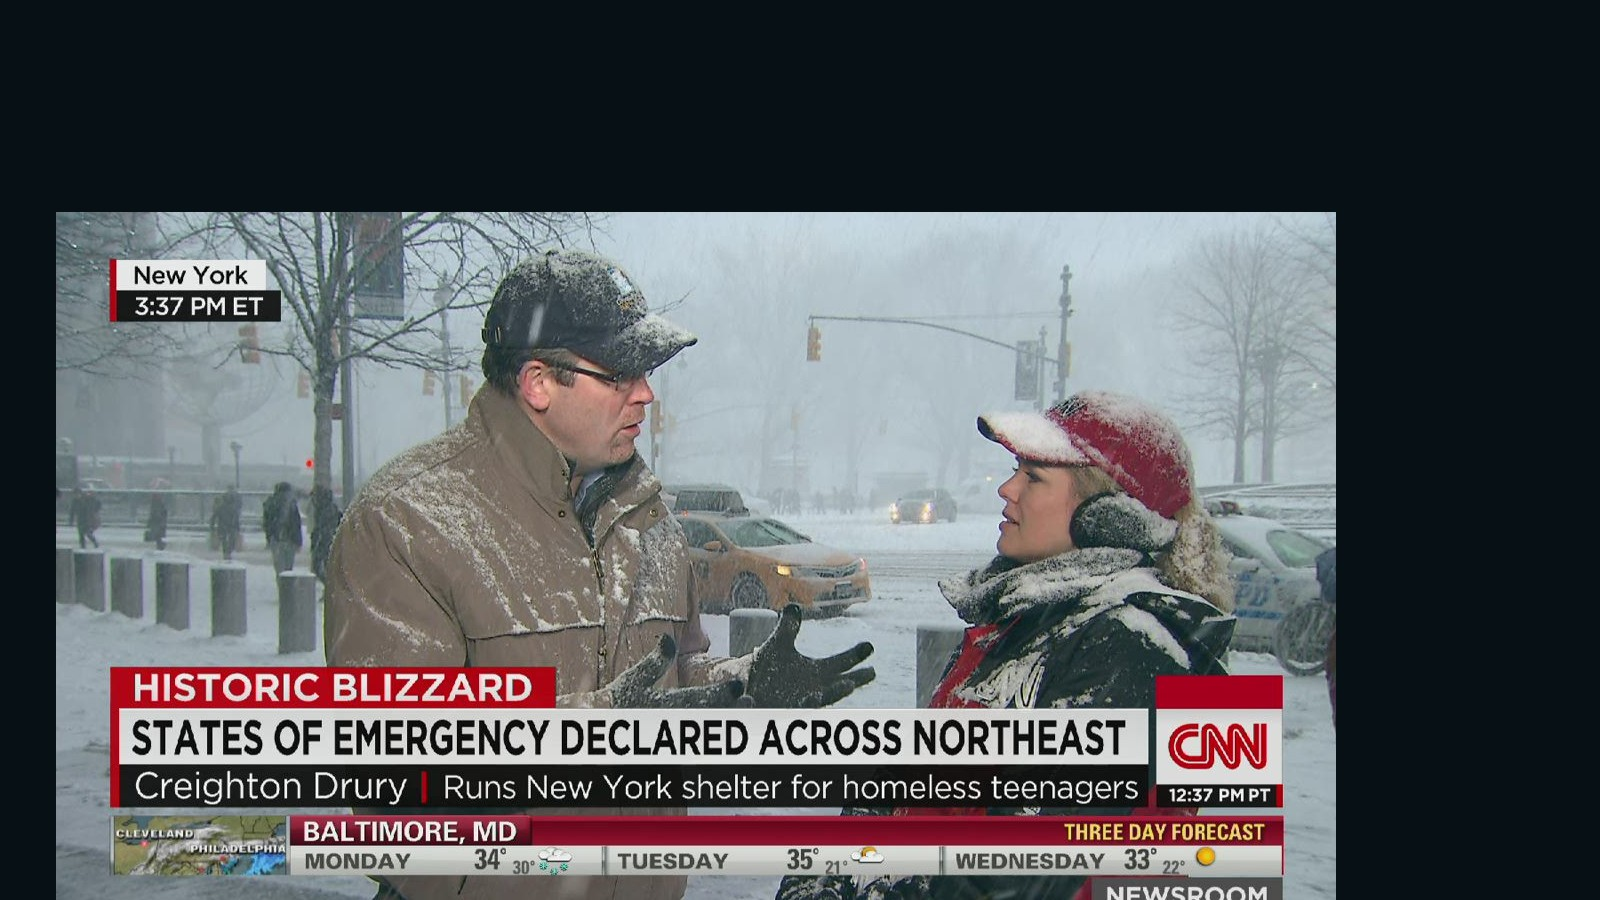 Opportunity to reach out to homeless during blizzard - CNN Video